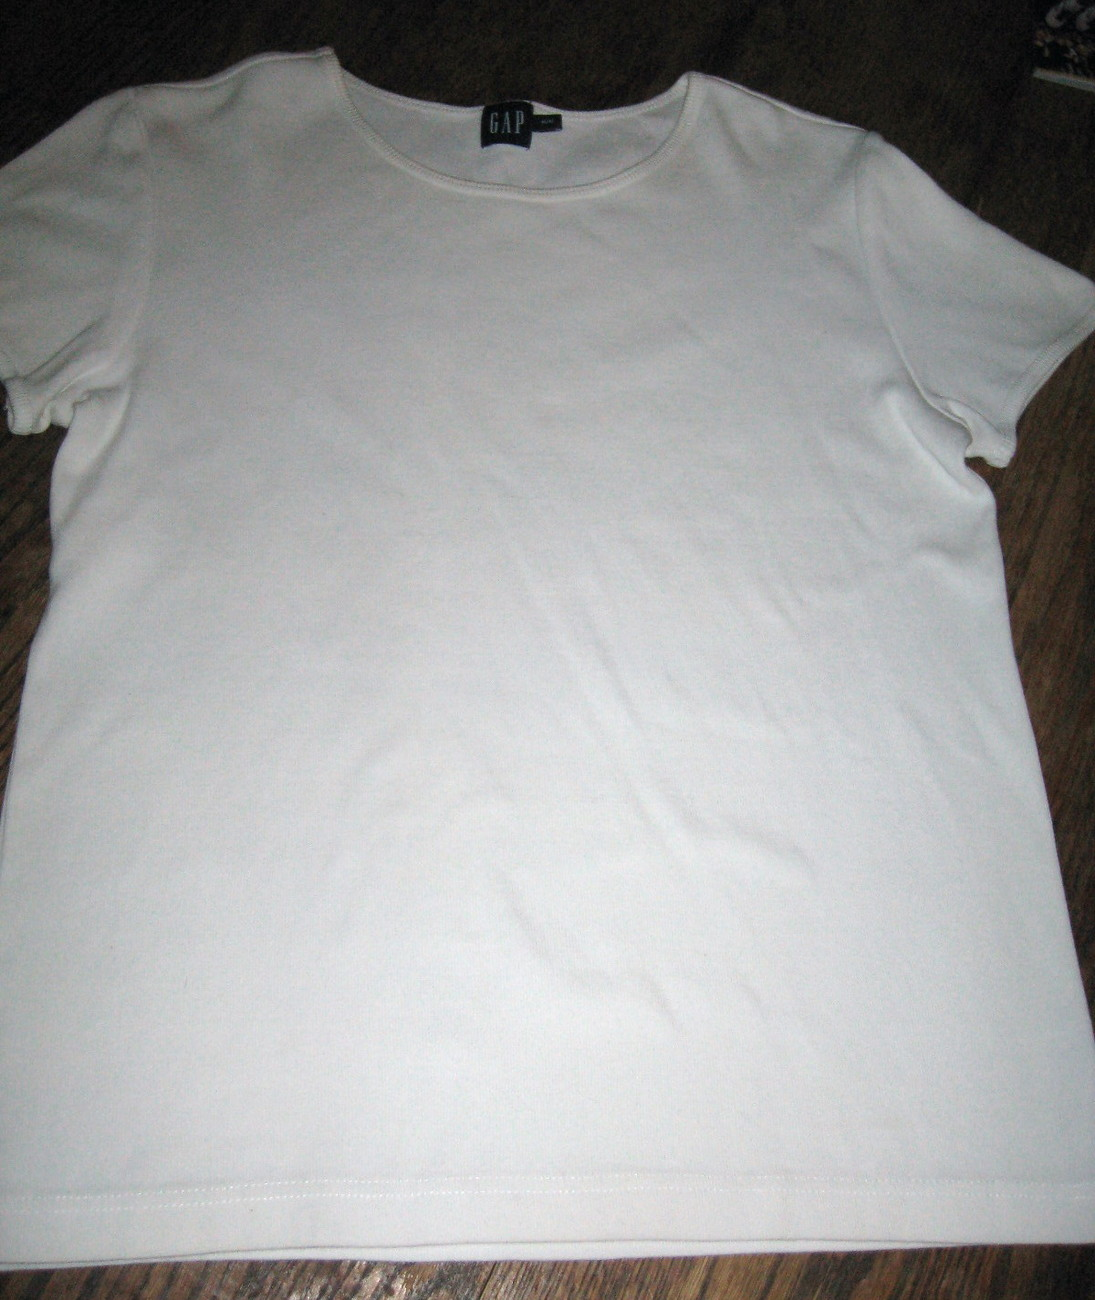 LADIES 100 PERCENT COTTON TOP, WHITE, SIZE MEDIUM, BY GAP